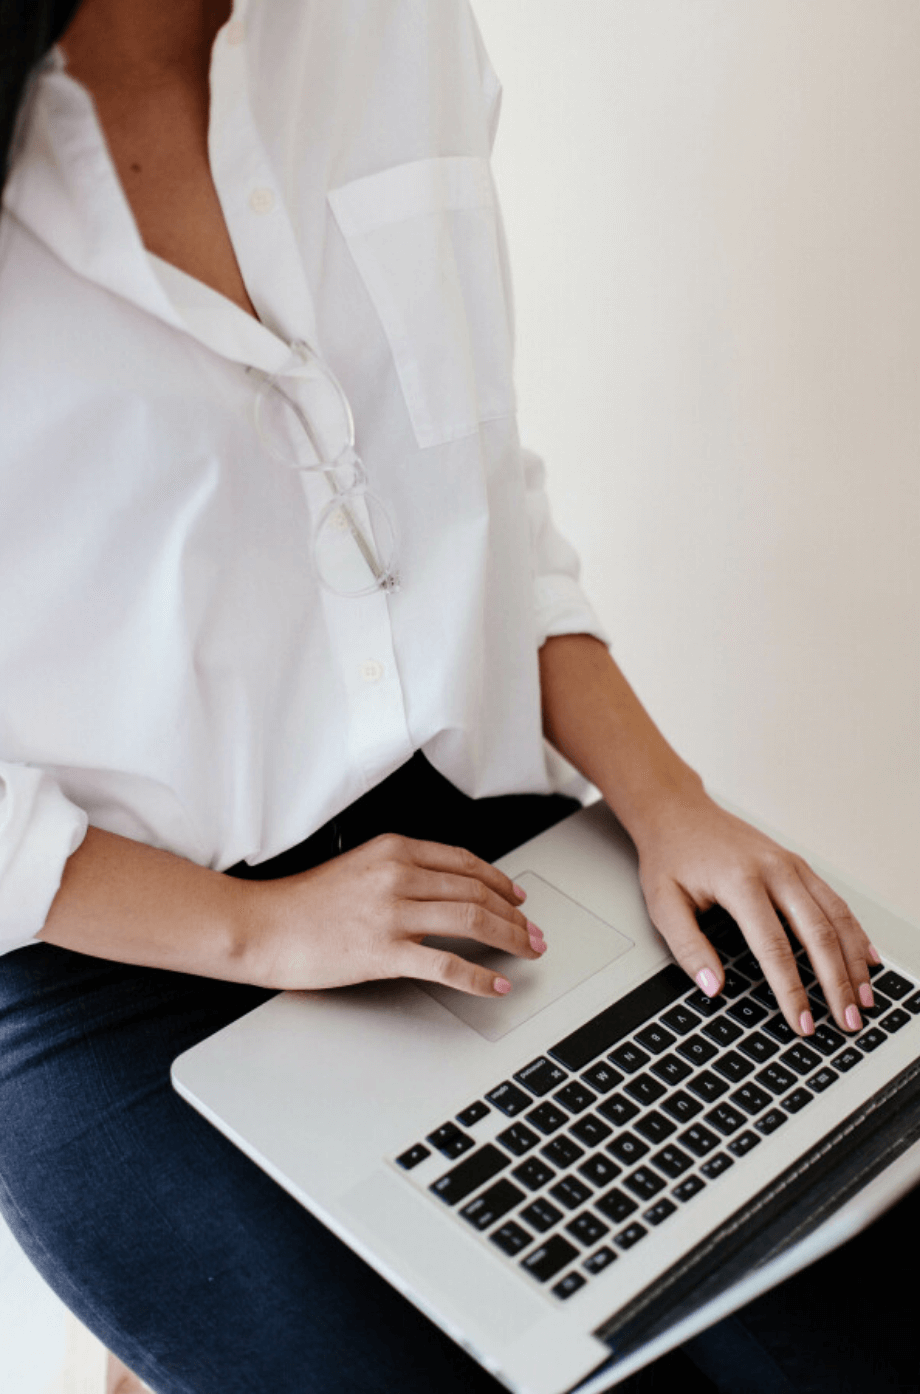 Woman with computer on her lap